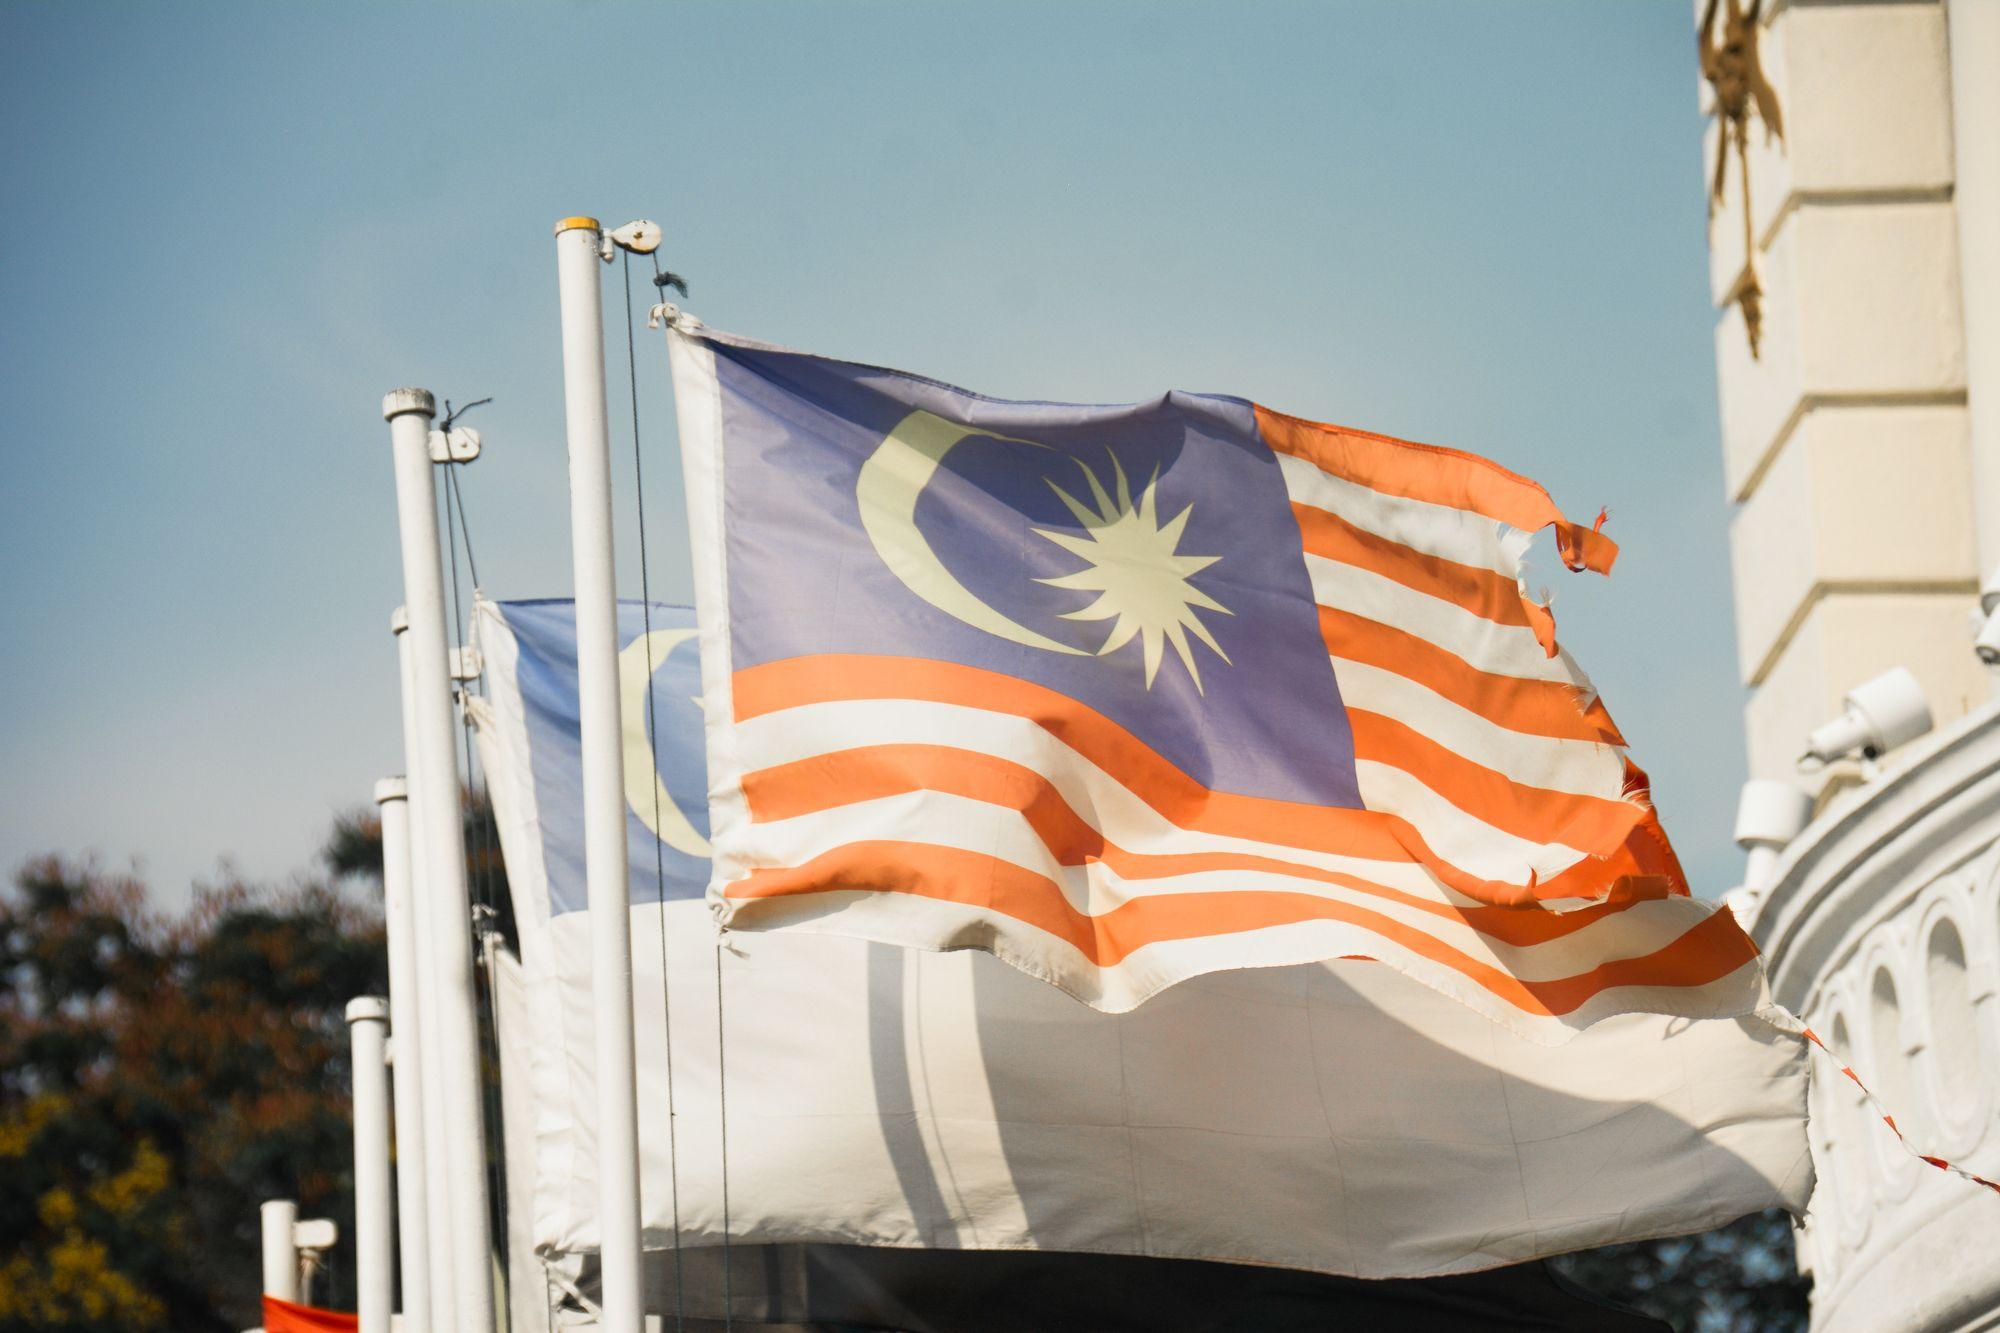 Malaysian awareness and understanding of events that took place on 13 May 1969.